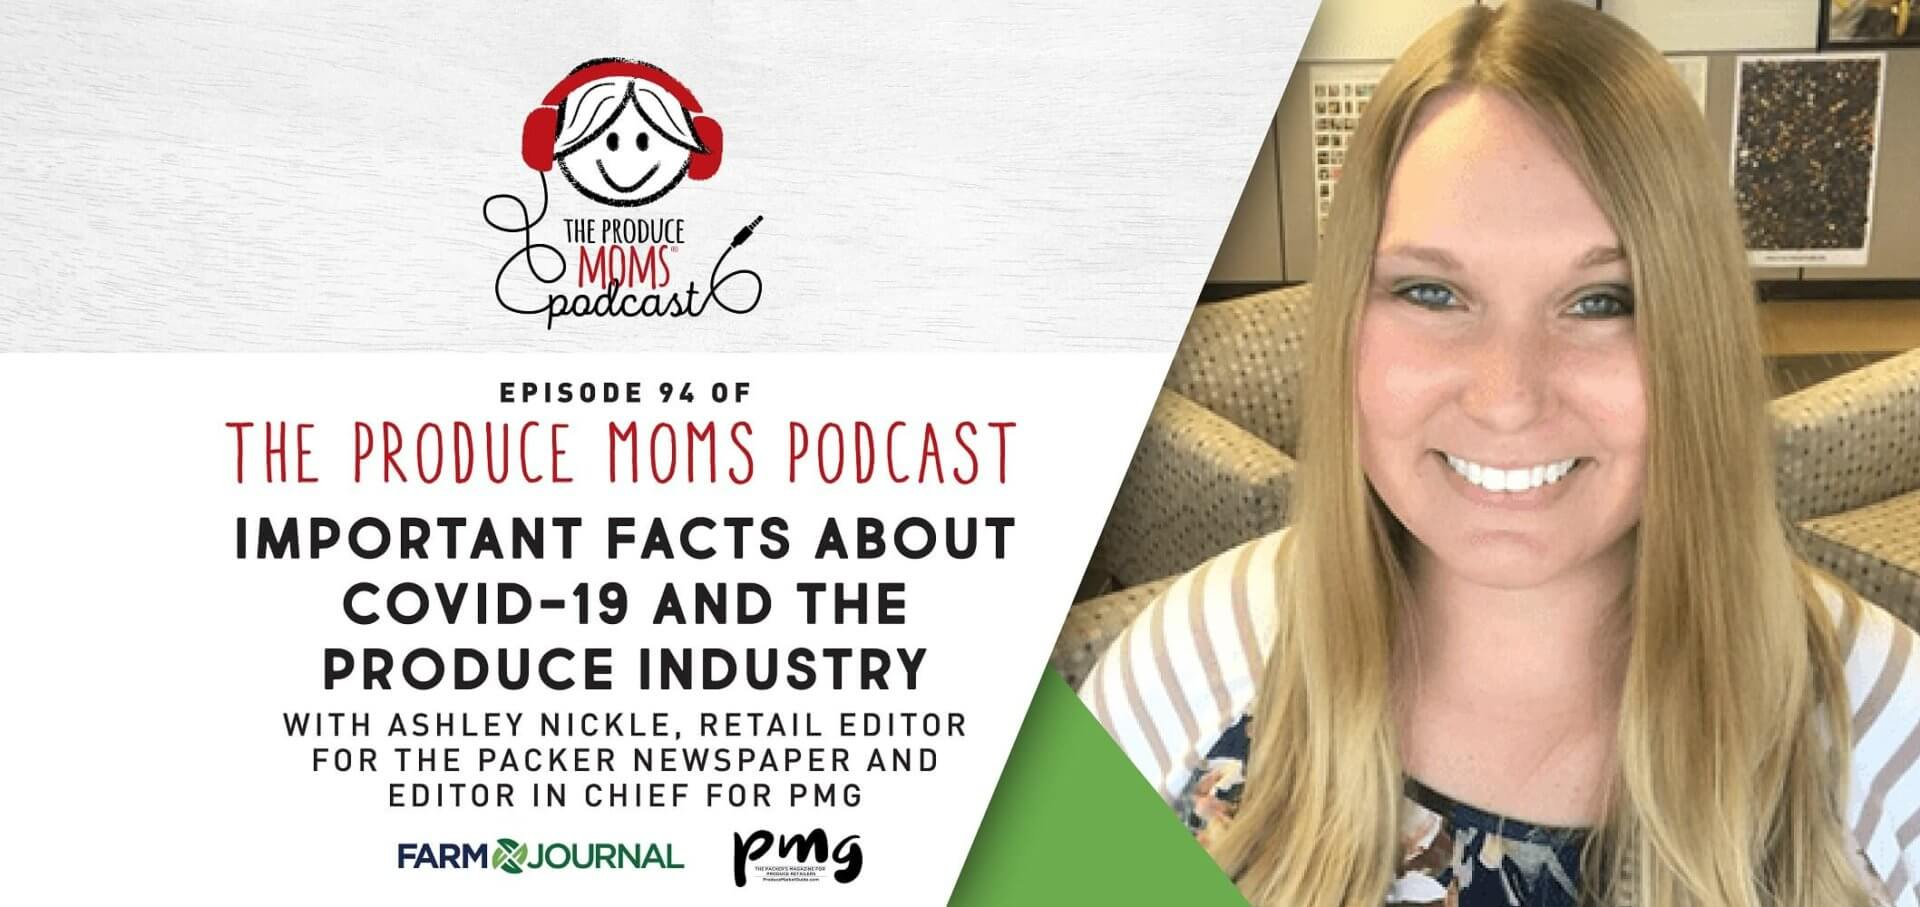 Episode 94: Important Facts About COVID-19 and the Produce Industry with Ashley Nickle, Retail Editor for The Packer Newspaper and Editor in Chief for PMG